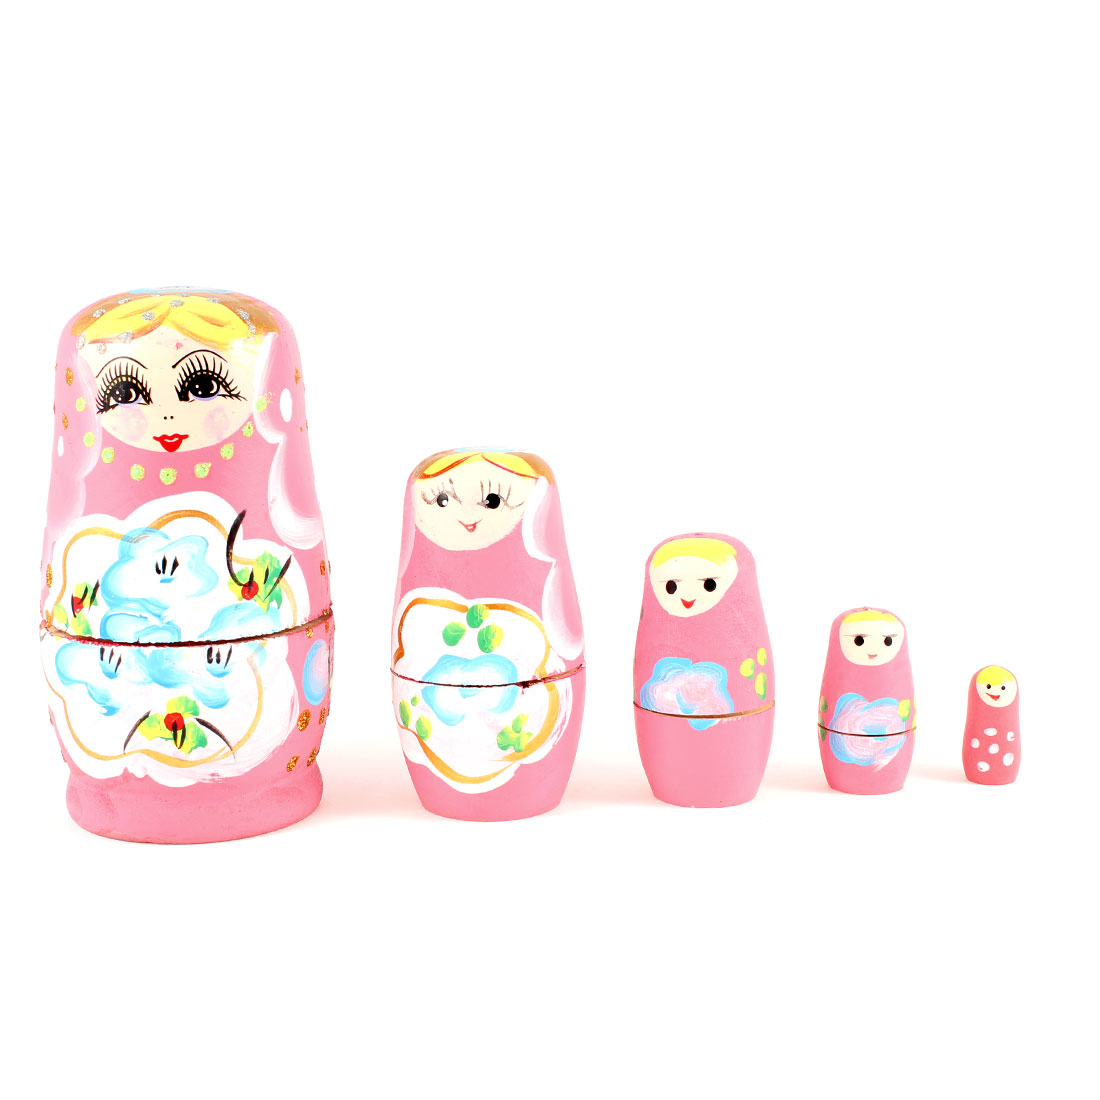 5 in 1 Separates Smiling Girl Pink Wooden Russian Dolls Sets for Kids